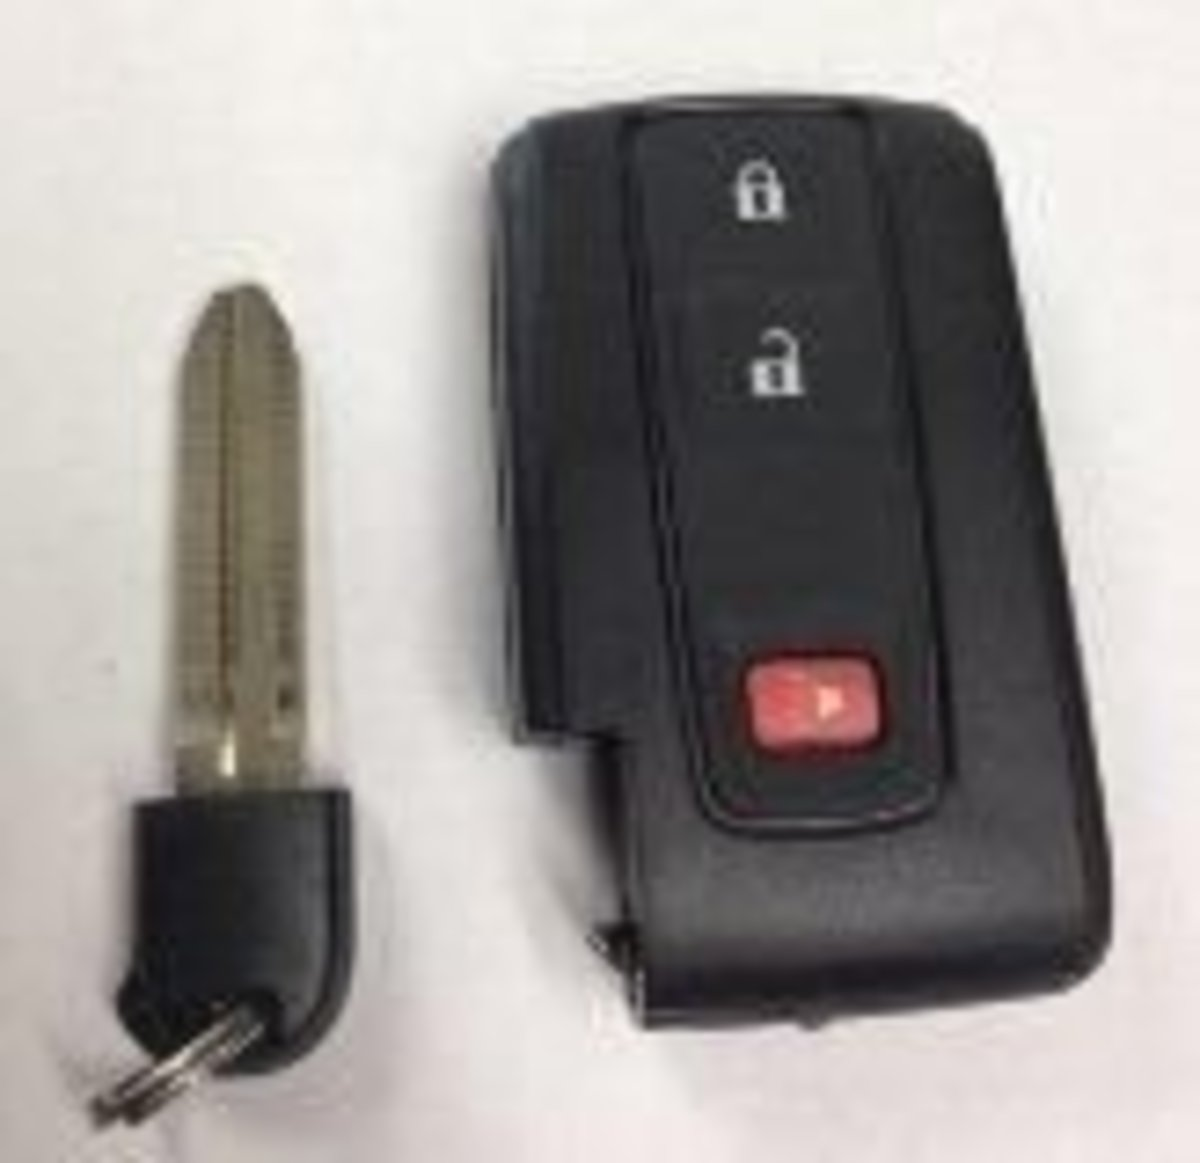 How to Change a Prius Key Battery or Purchase a Smart Key ...